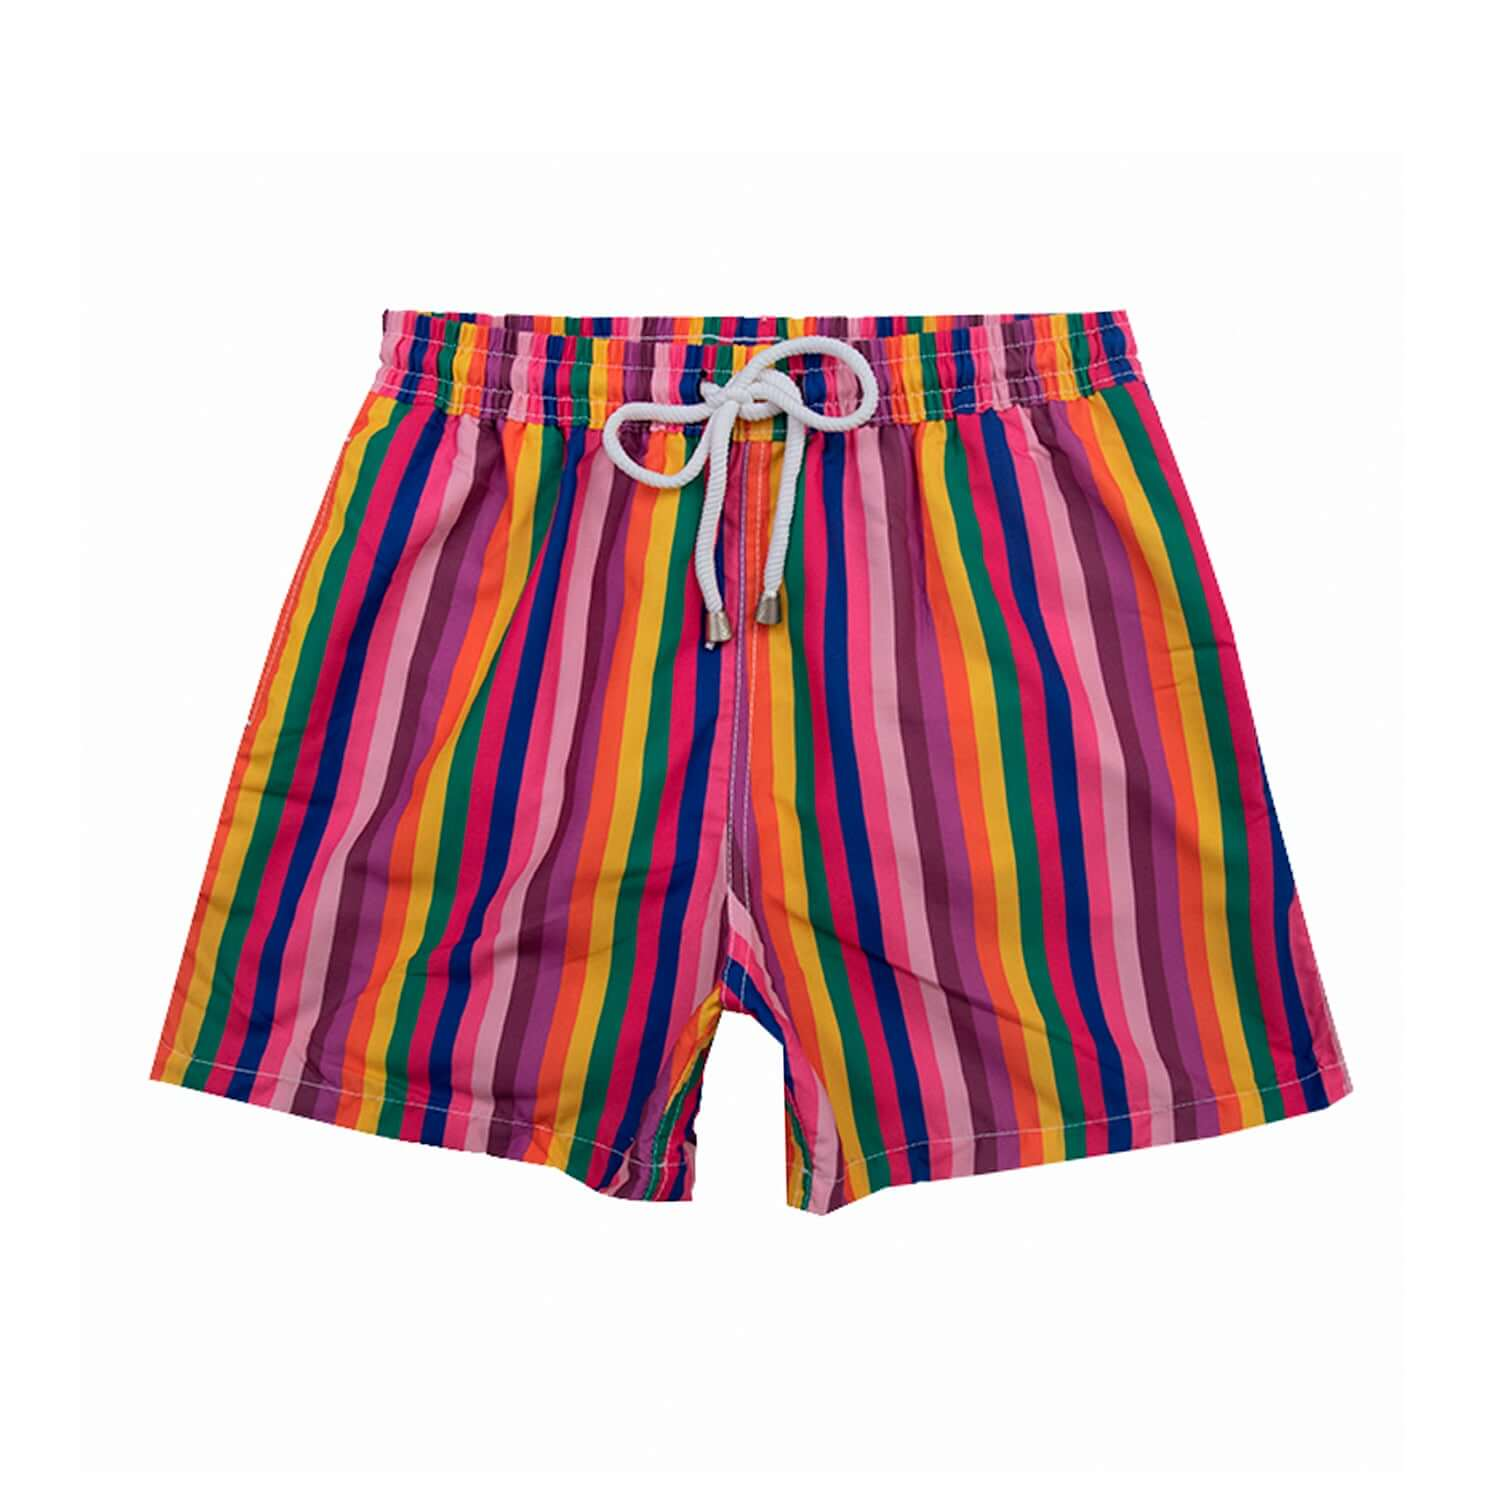 STRIPES MULTI PINK - Clorofila Sea Wear